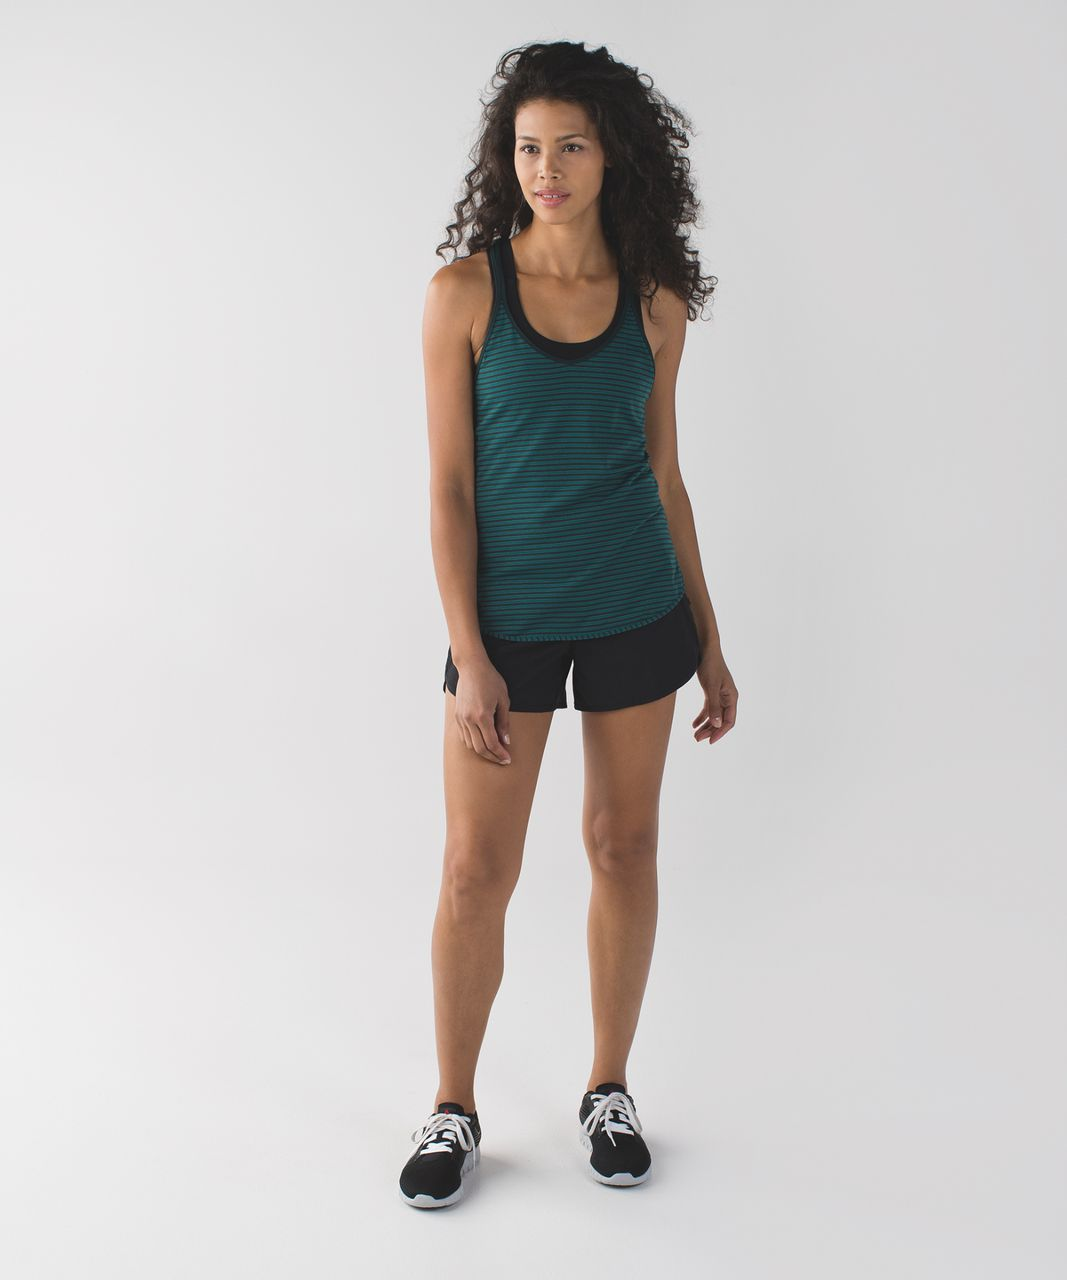 Lululemon What The Sport Singlet II - Silver Stripe Forage Teal Dark Fuel